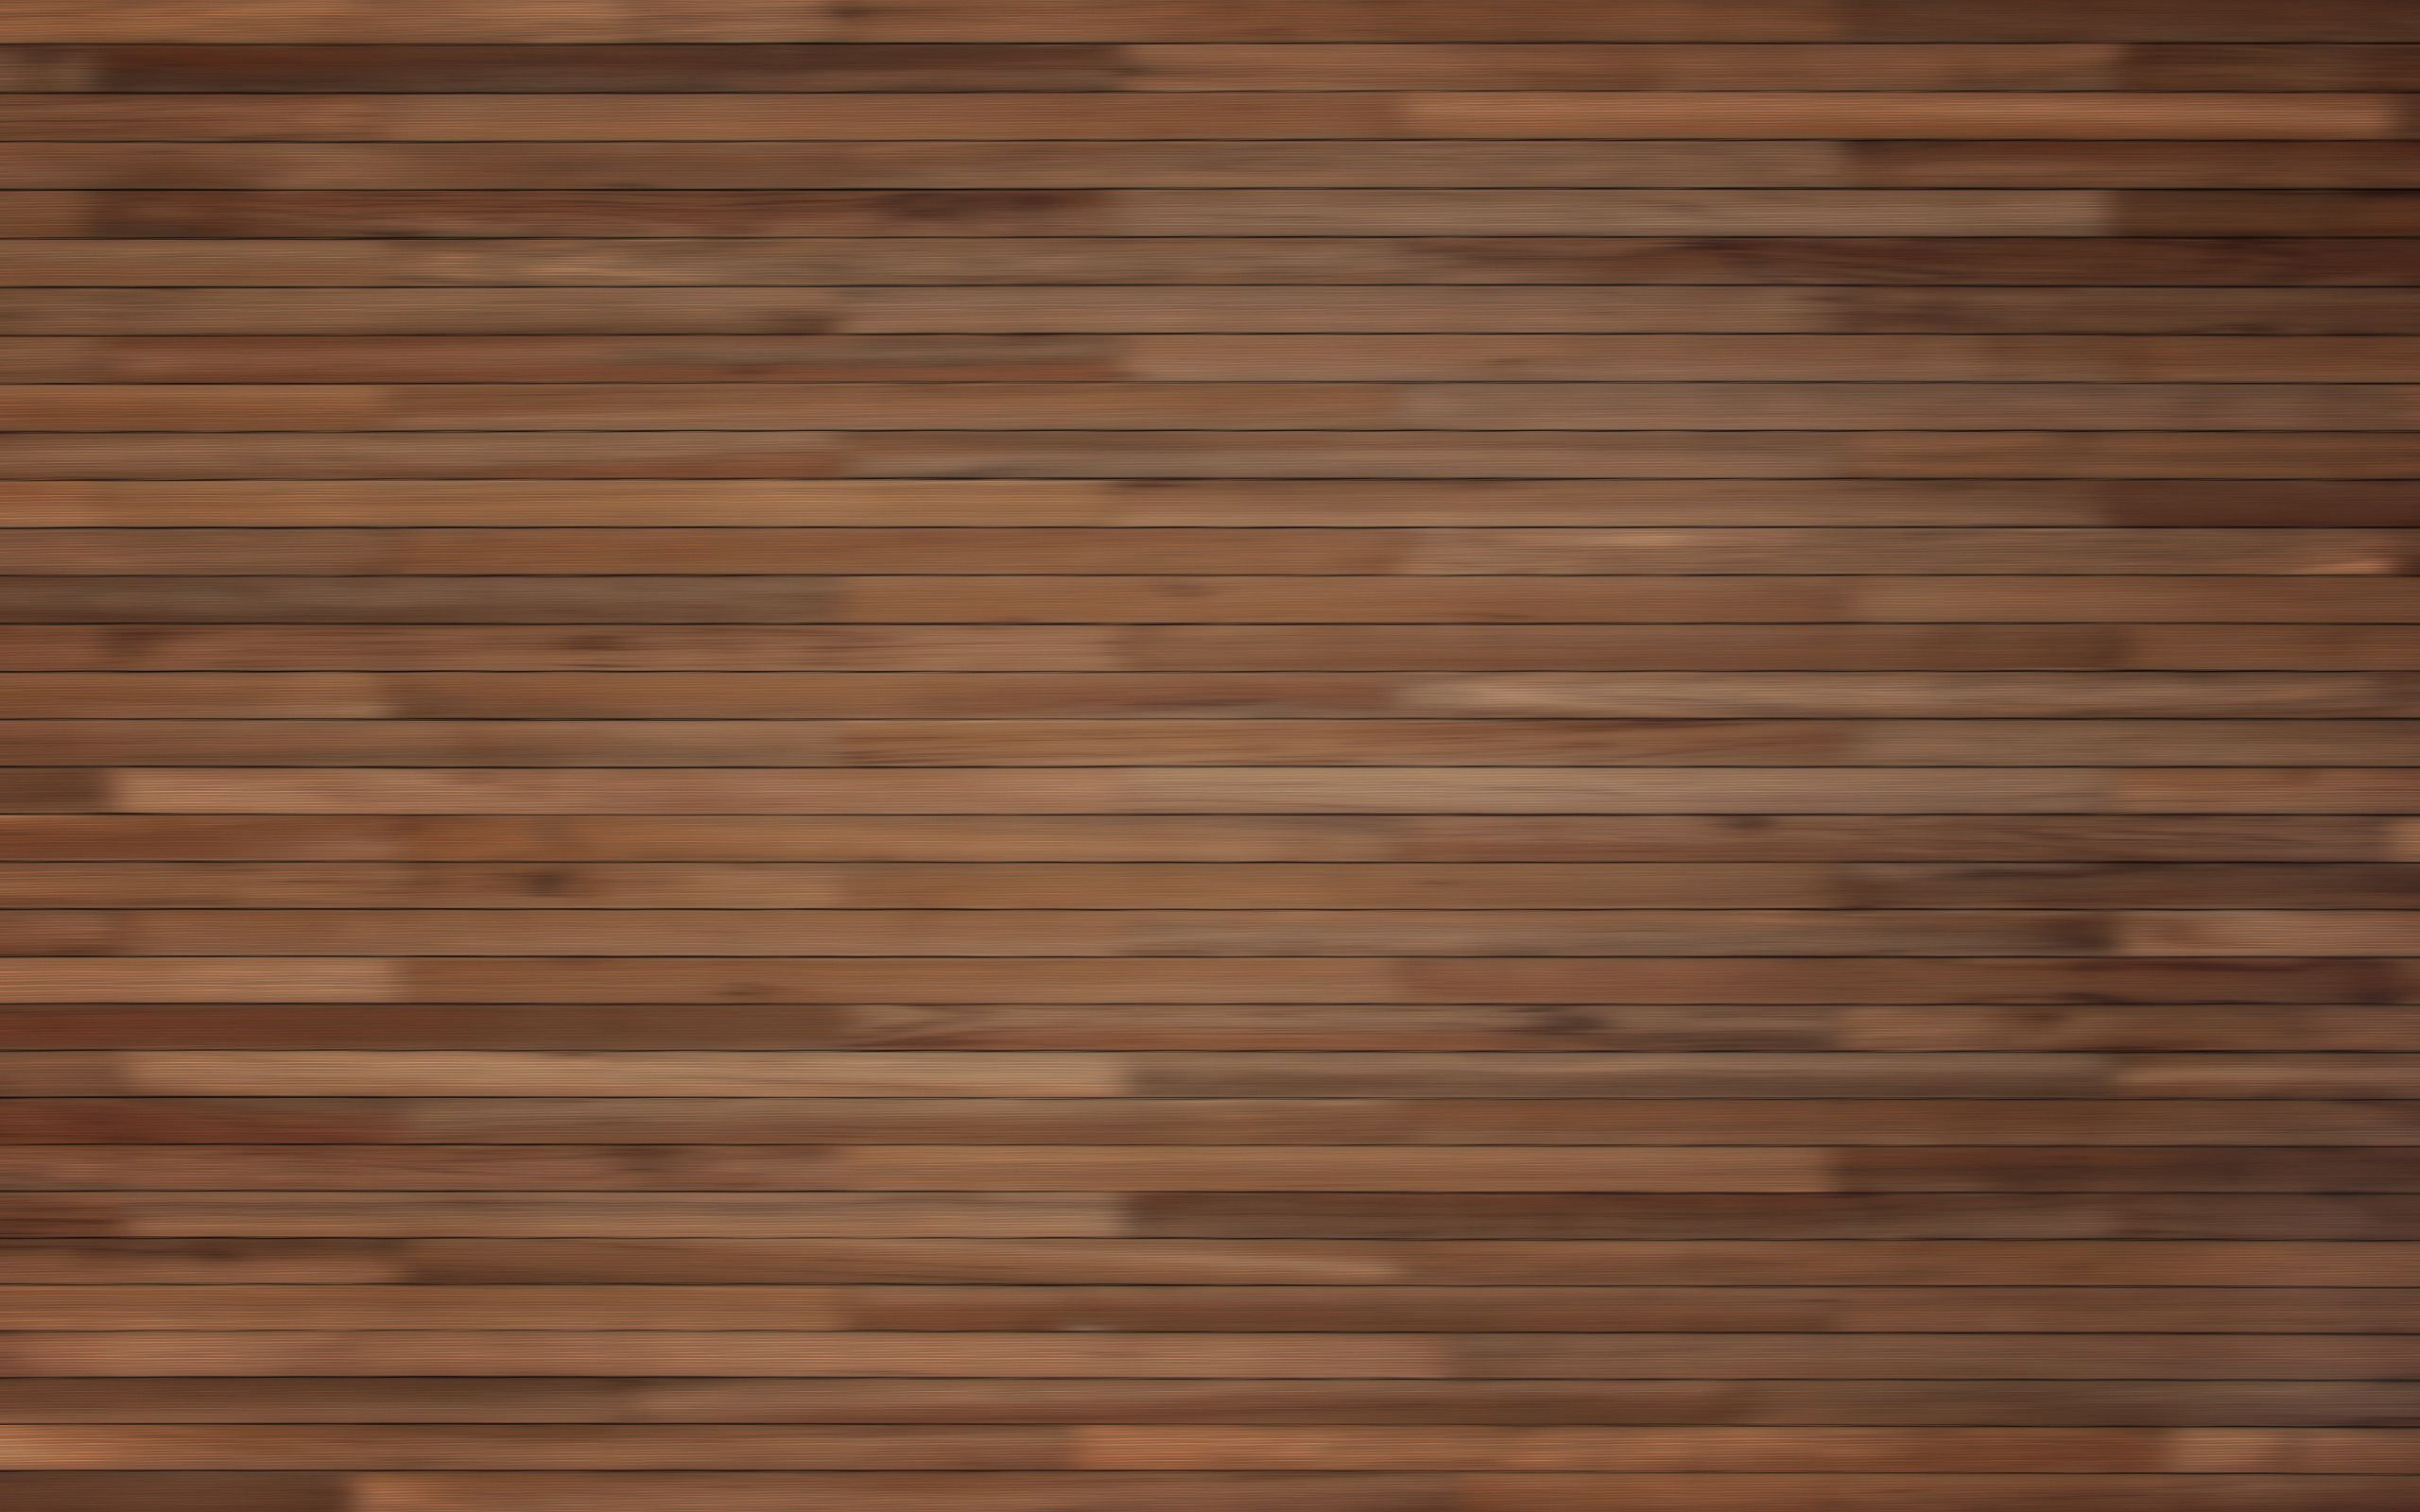 Wood floor texture buscar con google texturas for Hardwood floors and more